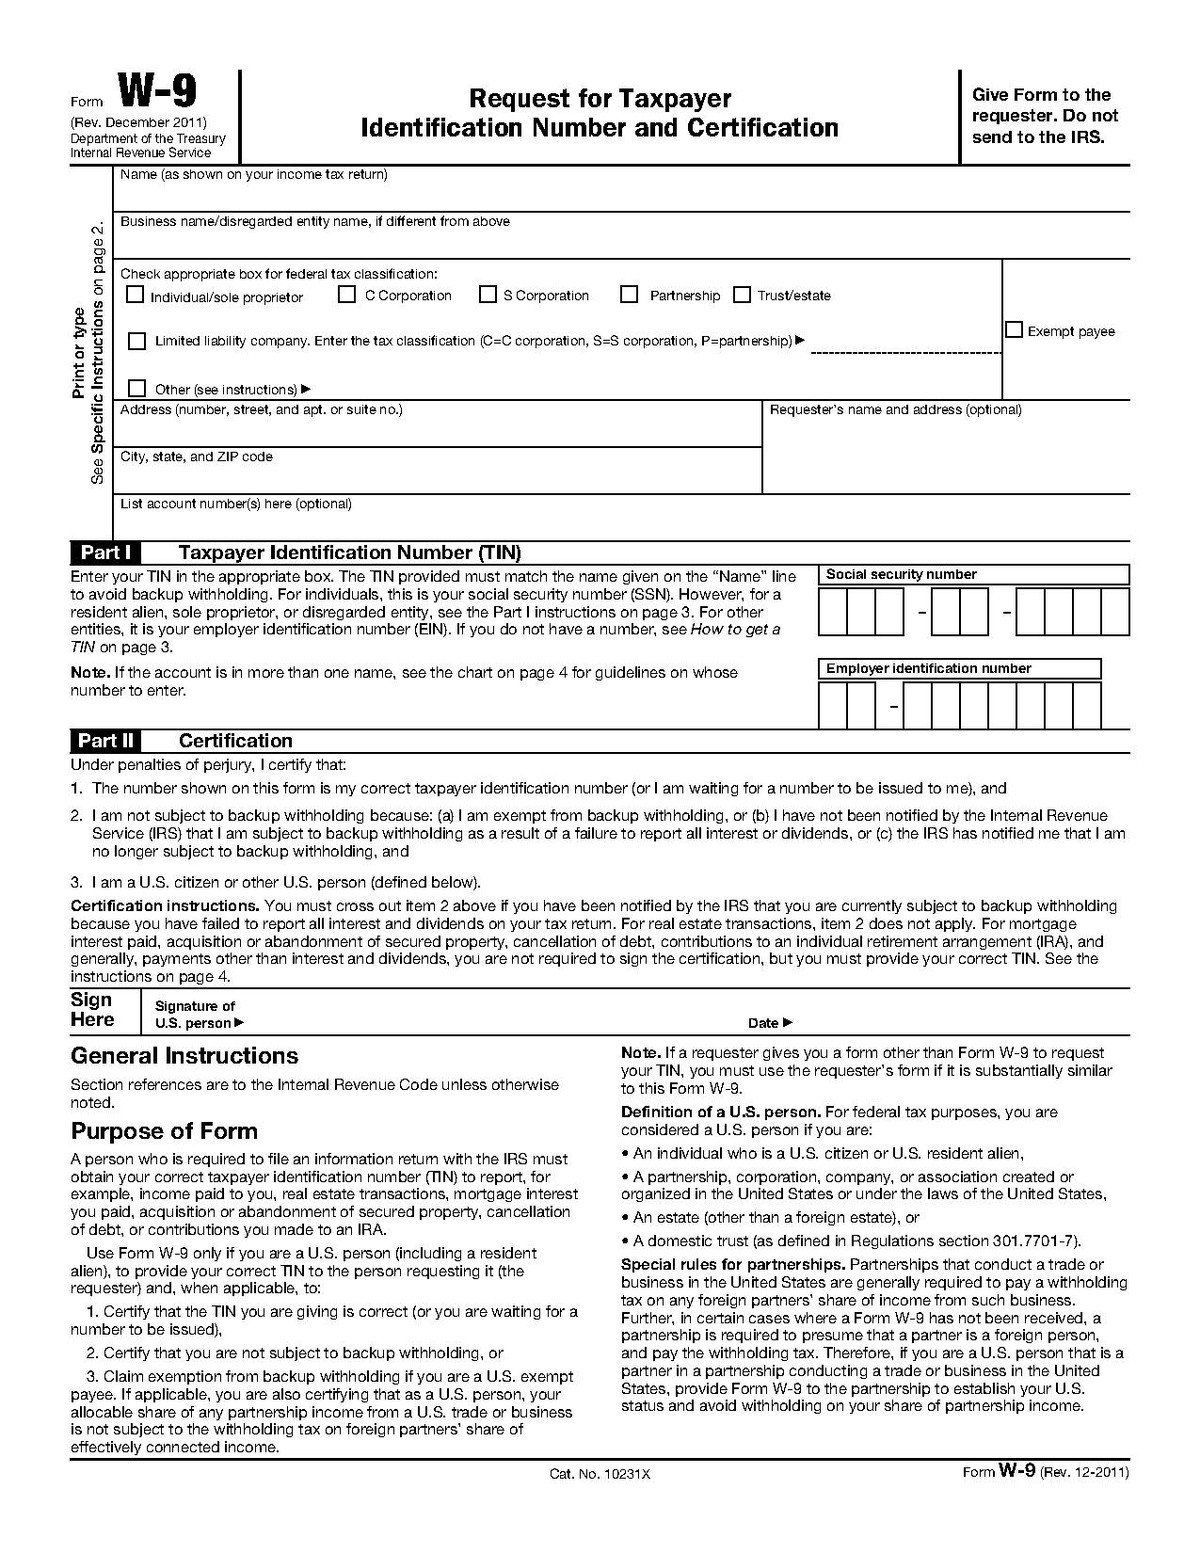 2015 Irs W9 Form Form W 9 In 2020 Tax Forms Irs Forms With Regard To Irs W9 Form 2021 Prin In 2021 Irs Forms Tax Forms Fillable Forms